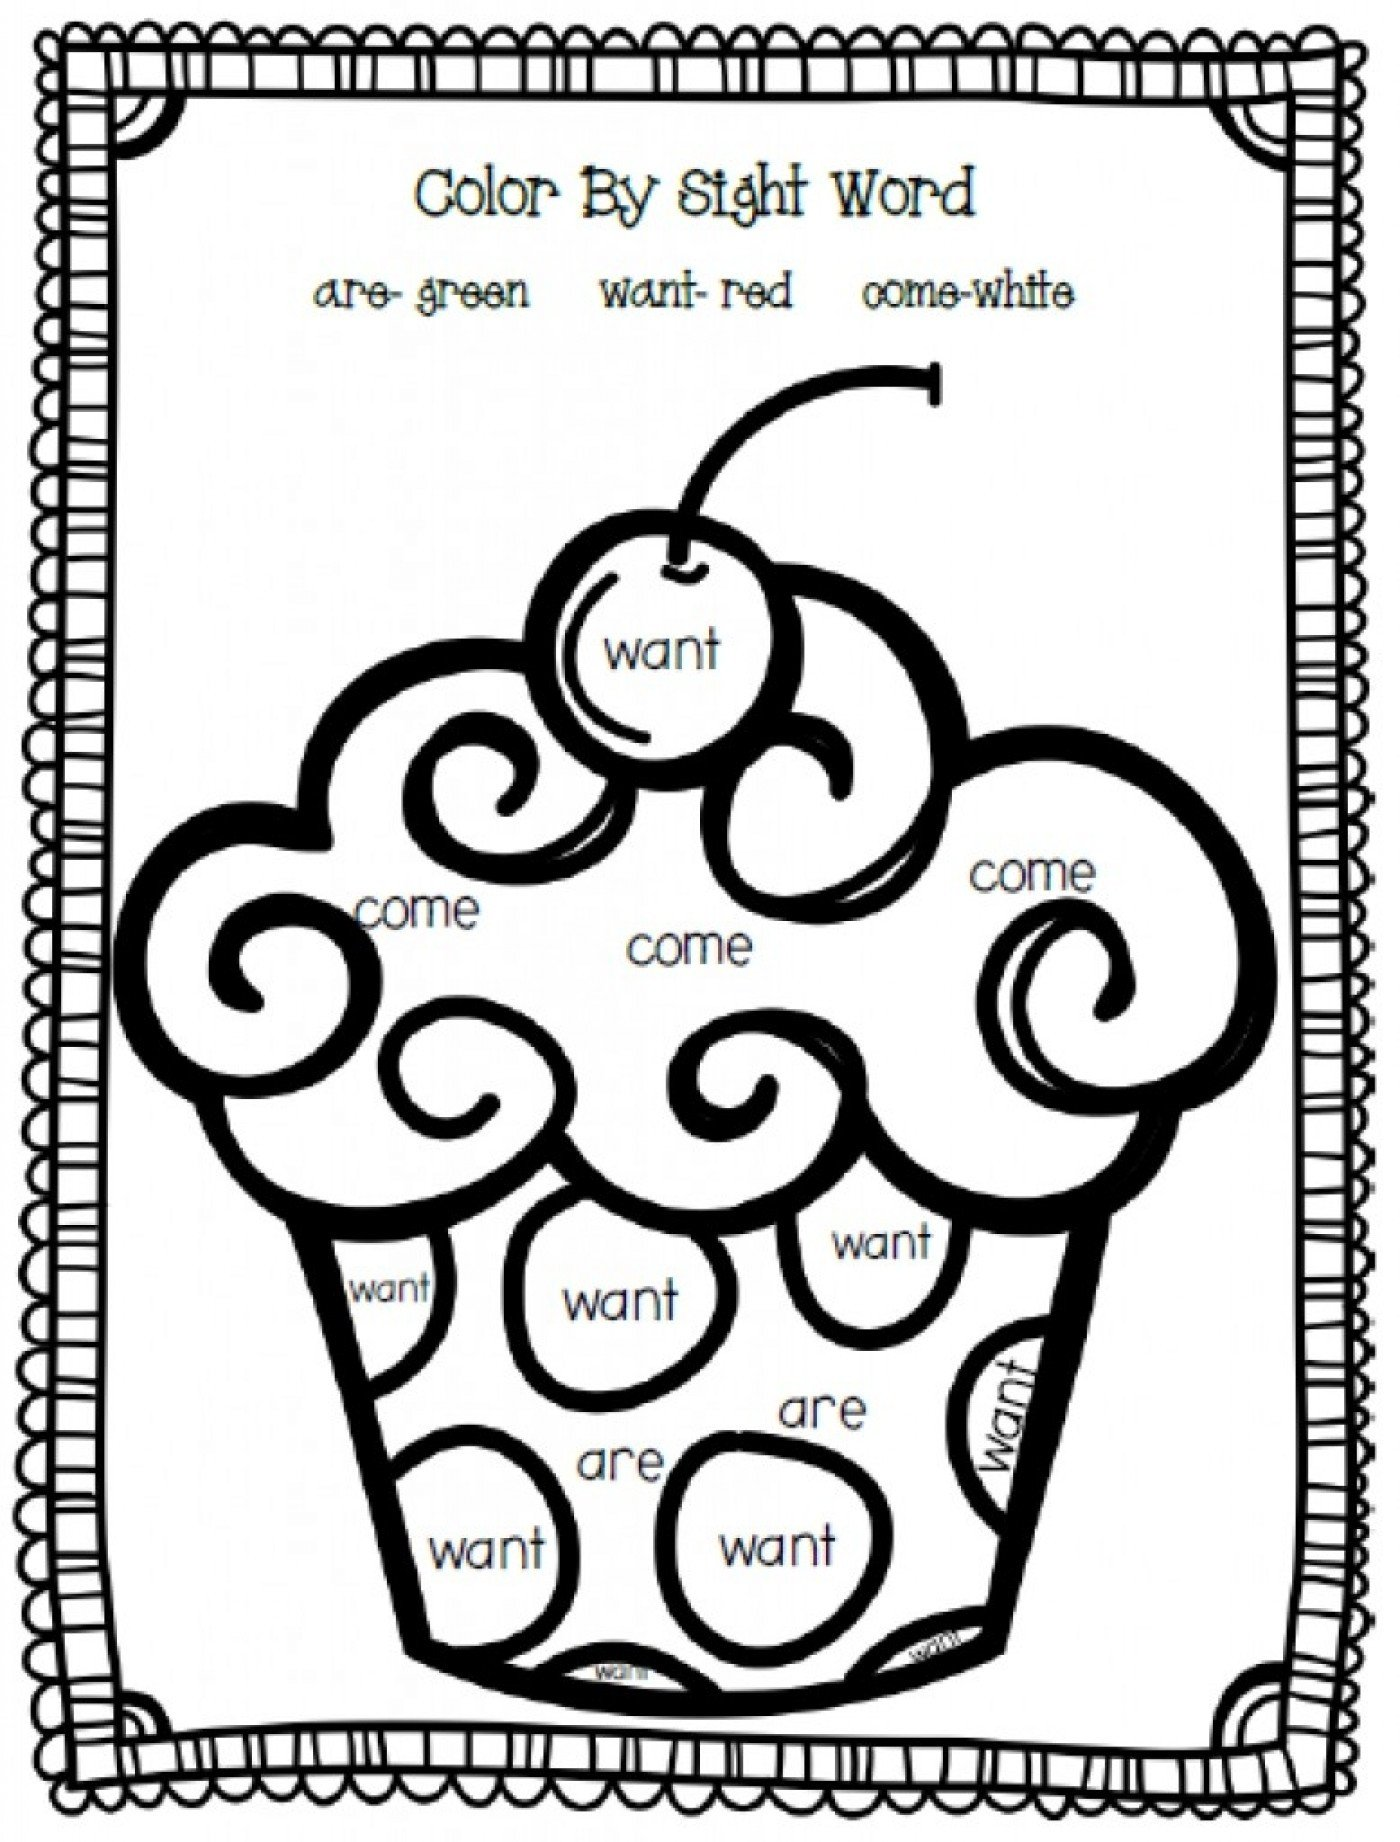 Kindergarten Color Words Worksheets Worksheets Coloring Book Kindergarten Sight Words